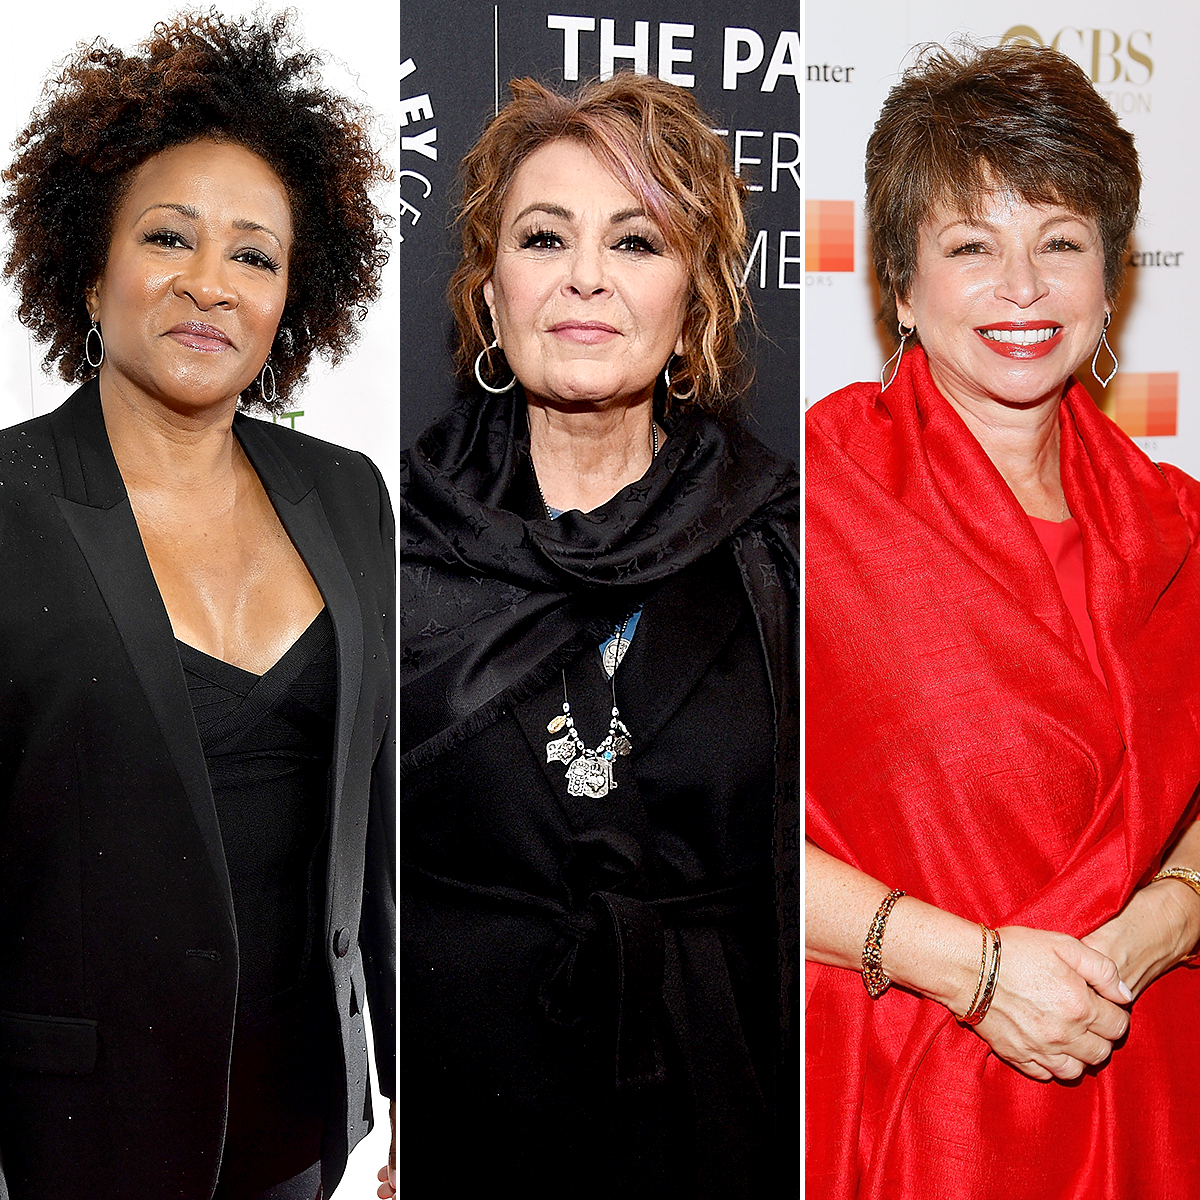 Wanda Sykes Quits  Roseanne  Amid Backlash Over Roseanne Barr s     Wanda Sykes Quits  Roseanne  Amid Backlash Over Roseanne Barr s Valerie  Jarrett Tweet